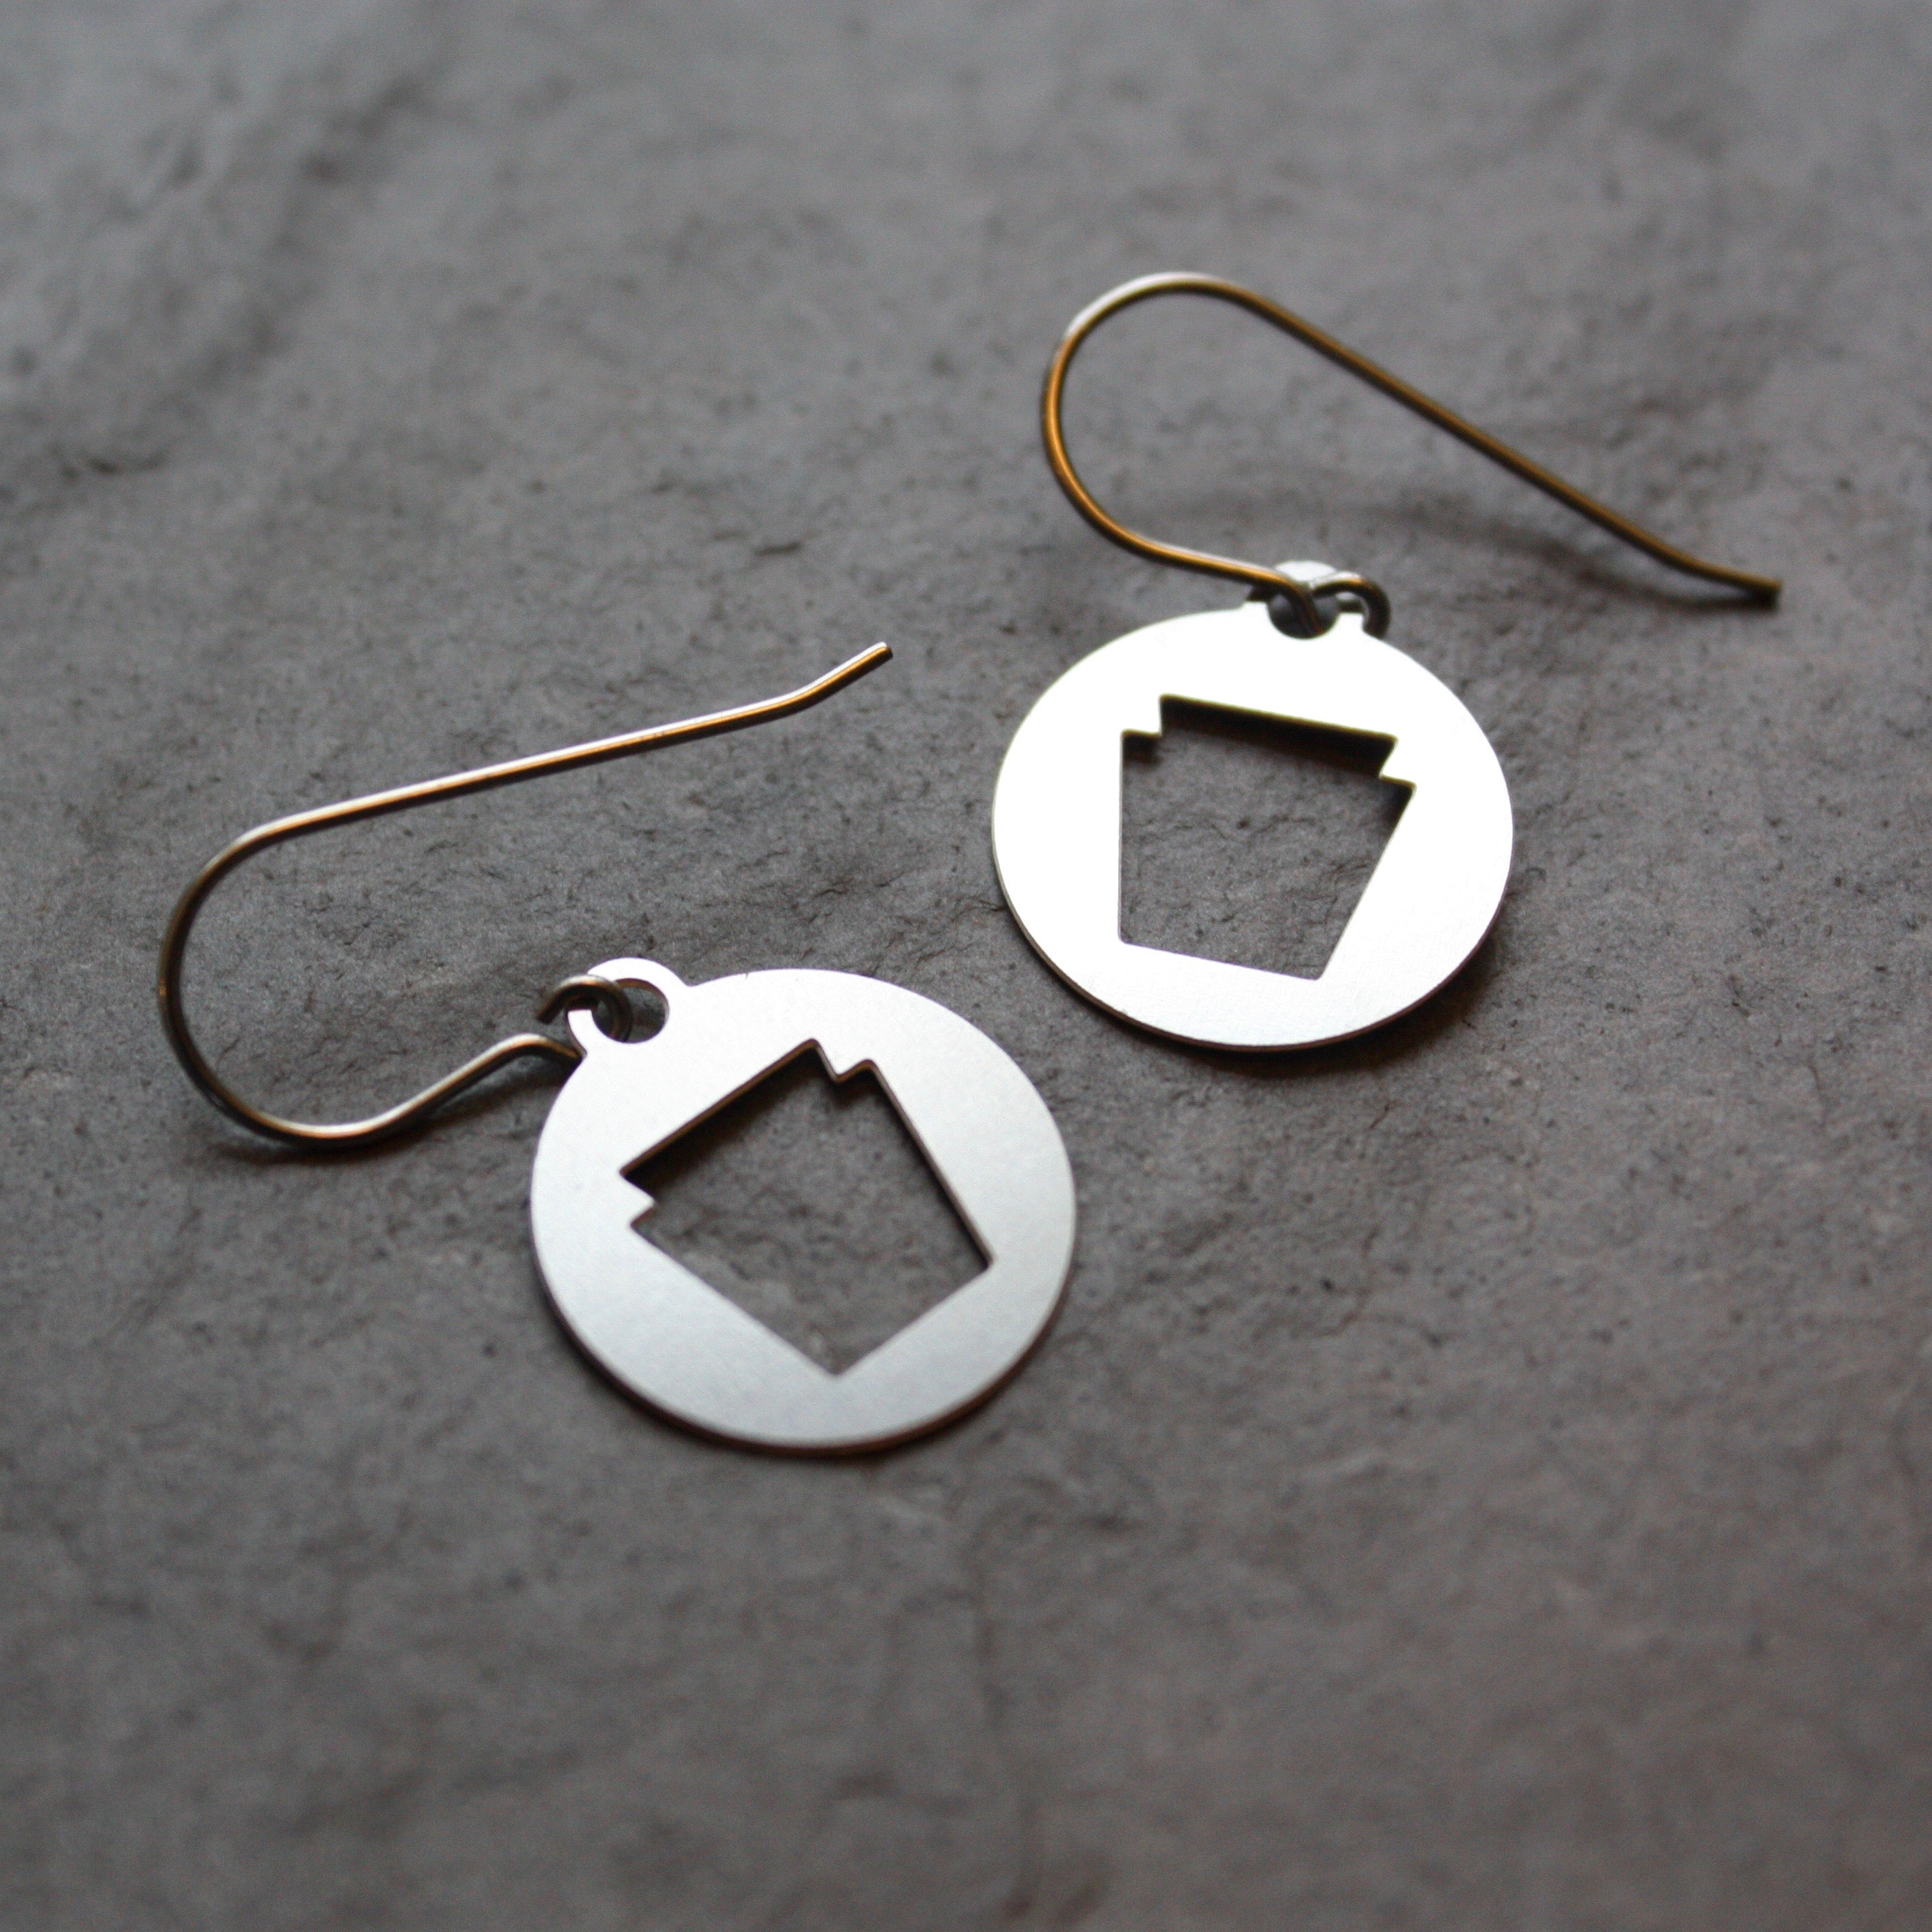 Pennsylvania Keystone Earrings by Audra Azoury